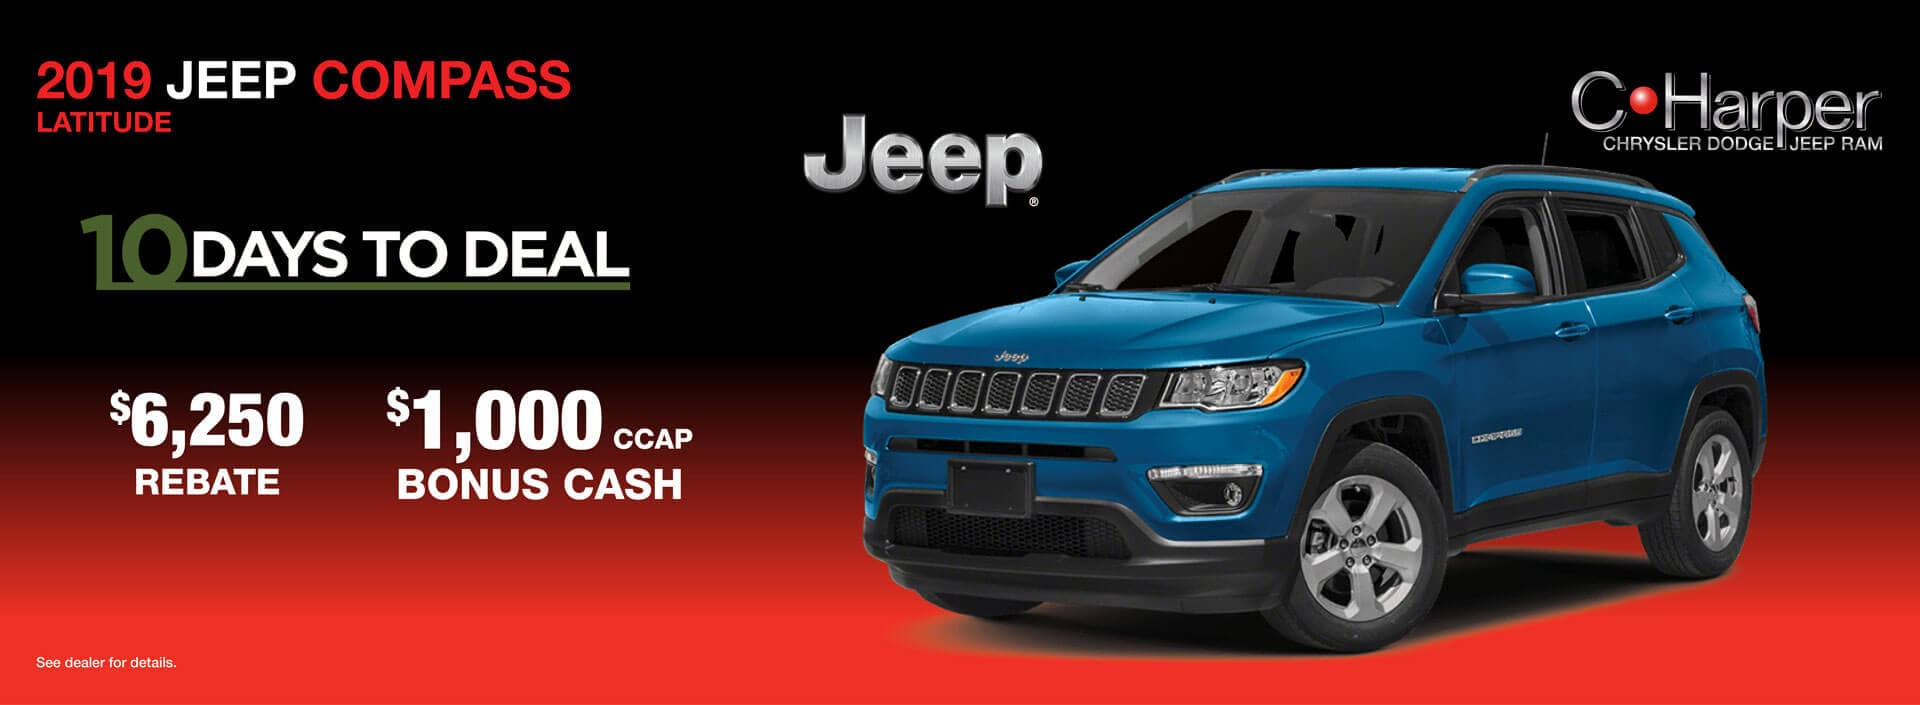 10 Days to Deal: Jeep Compass